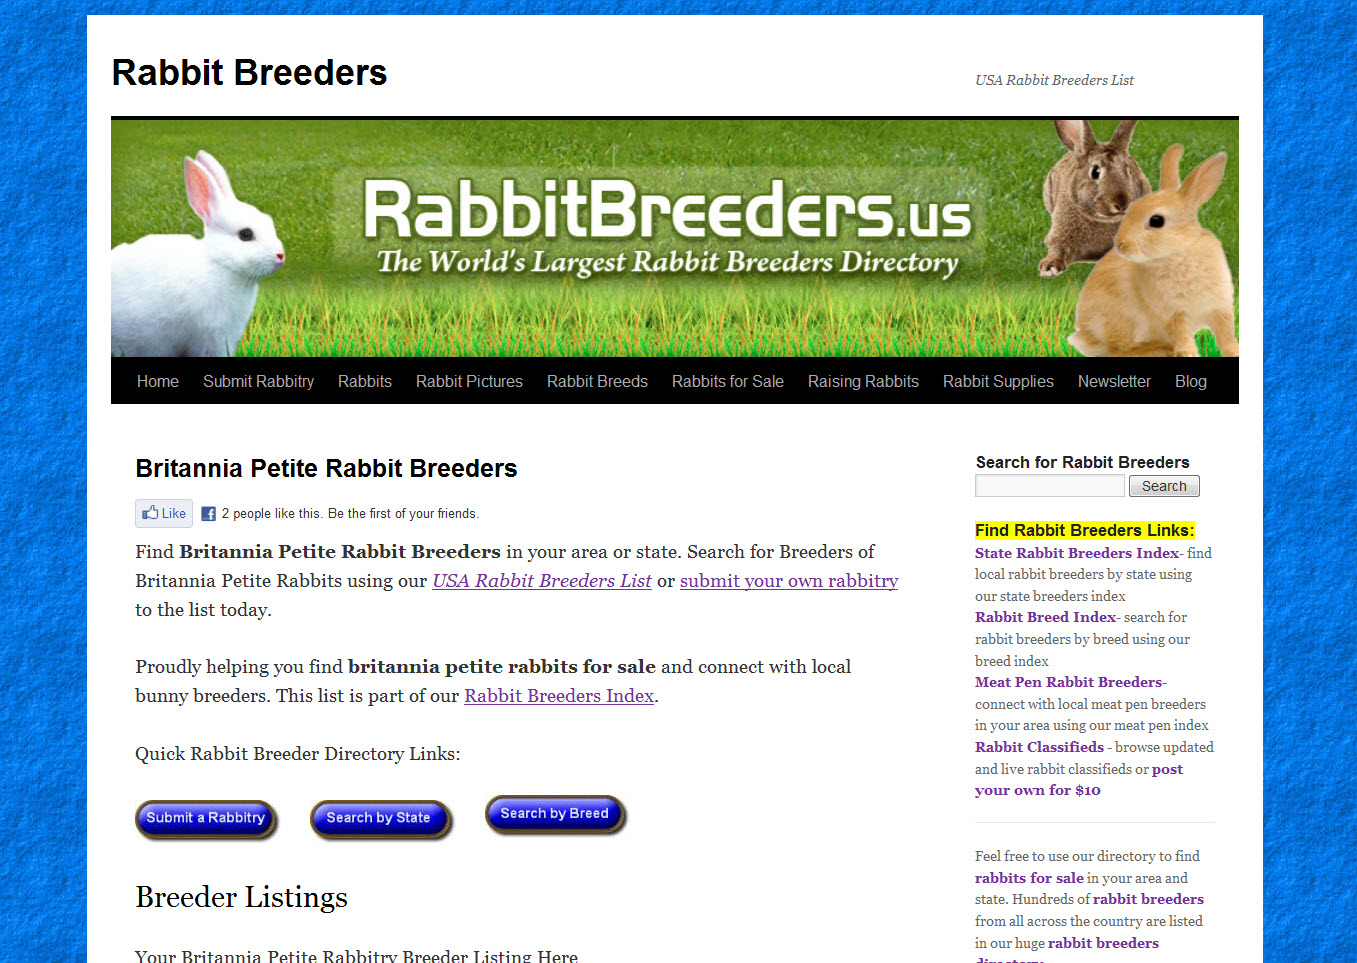 Britannia Petite Rabbits for Sale